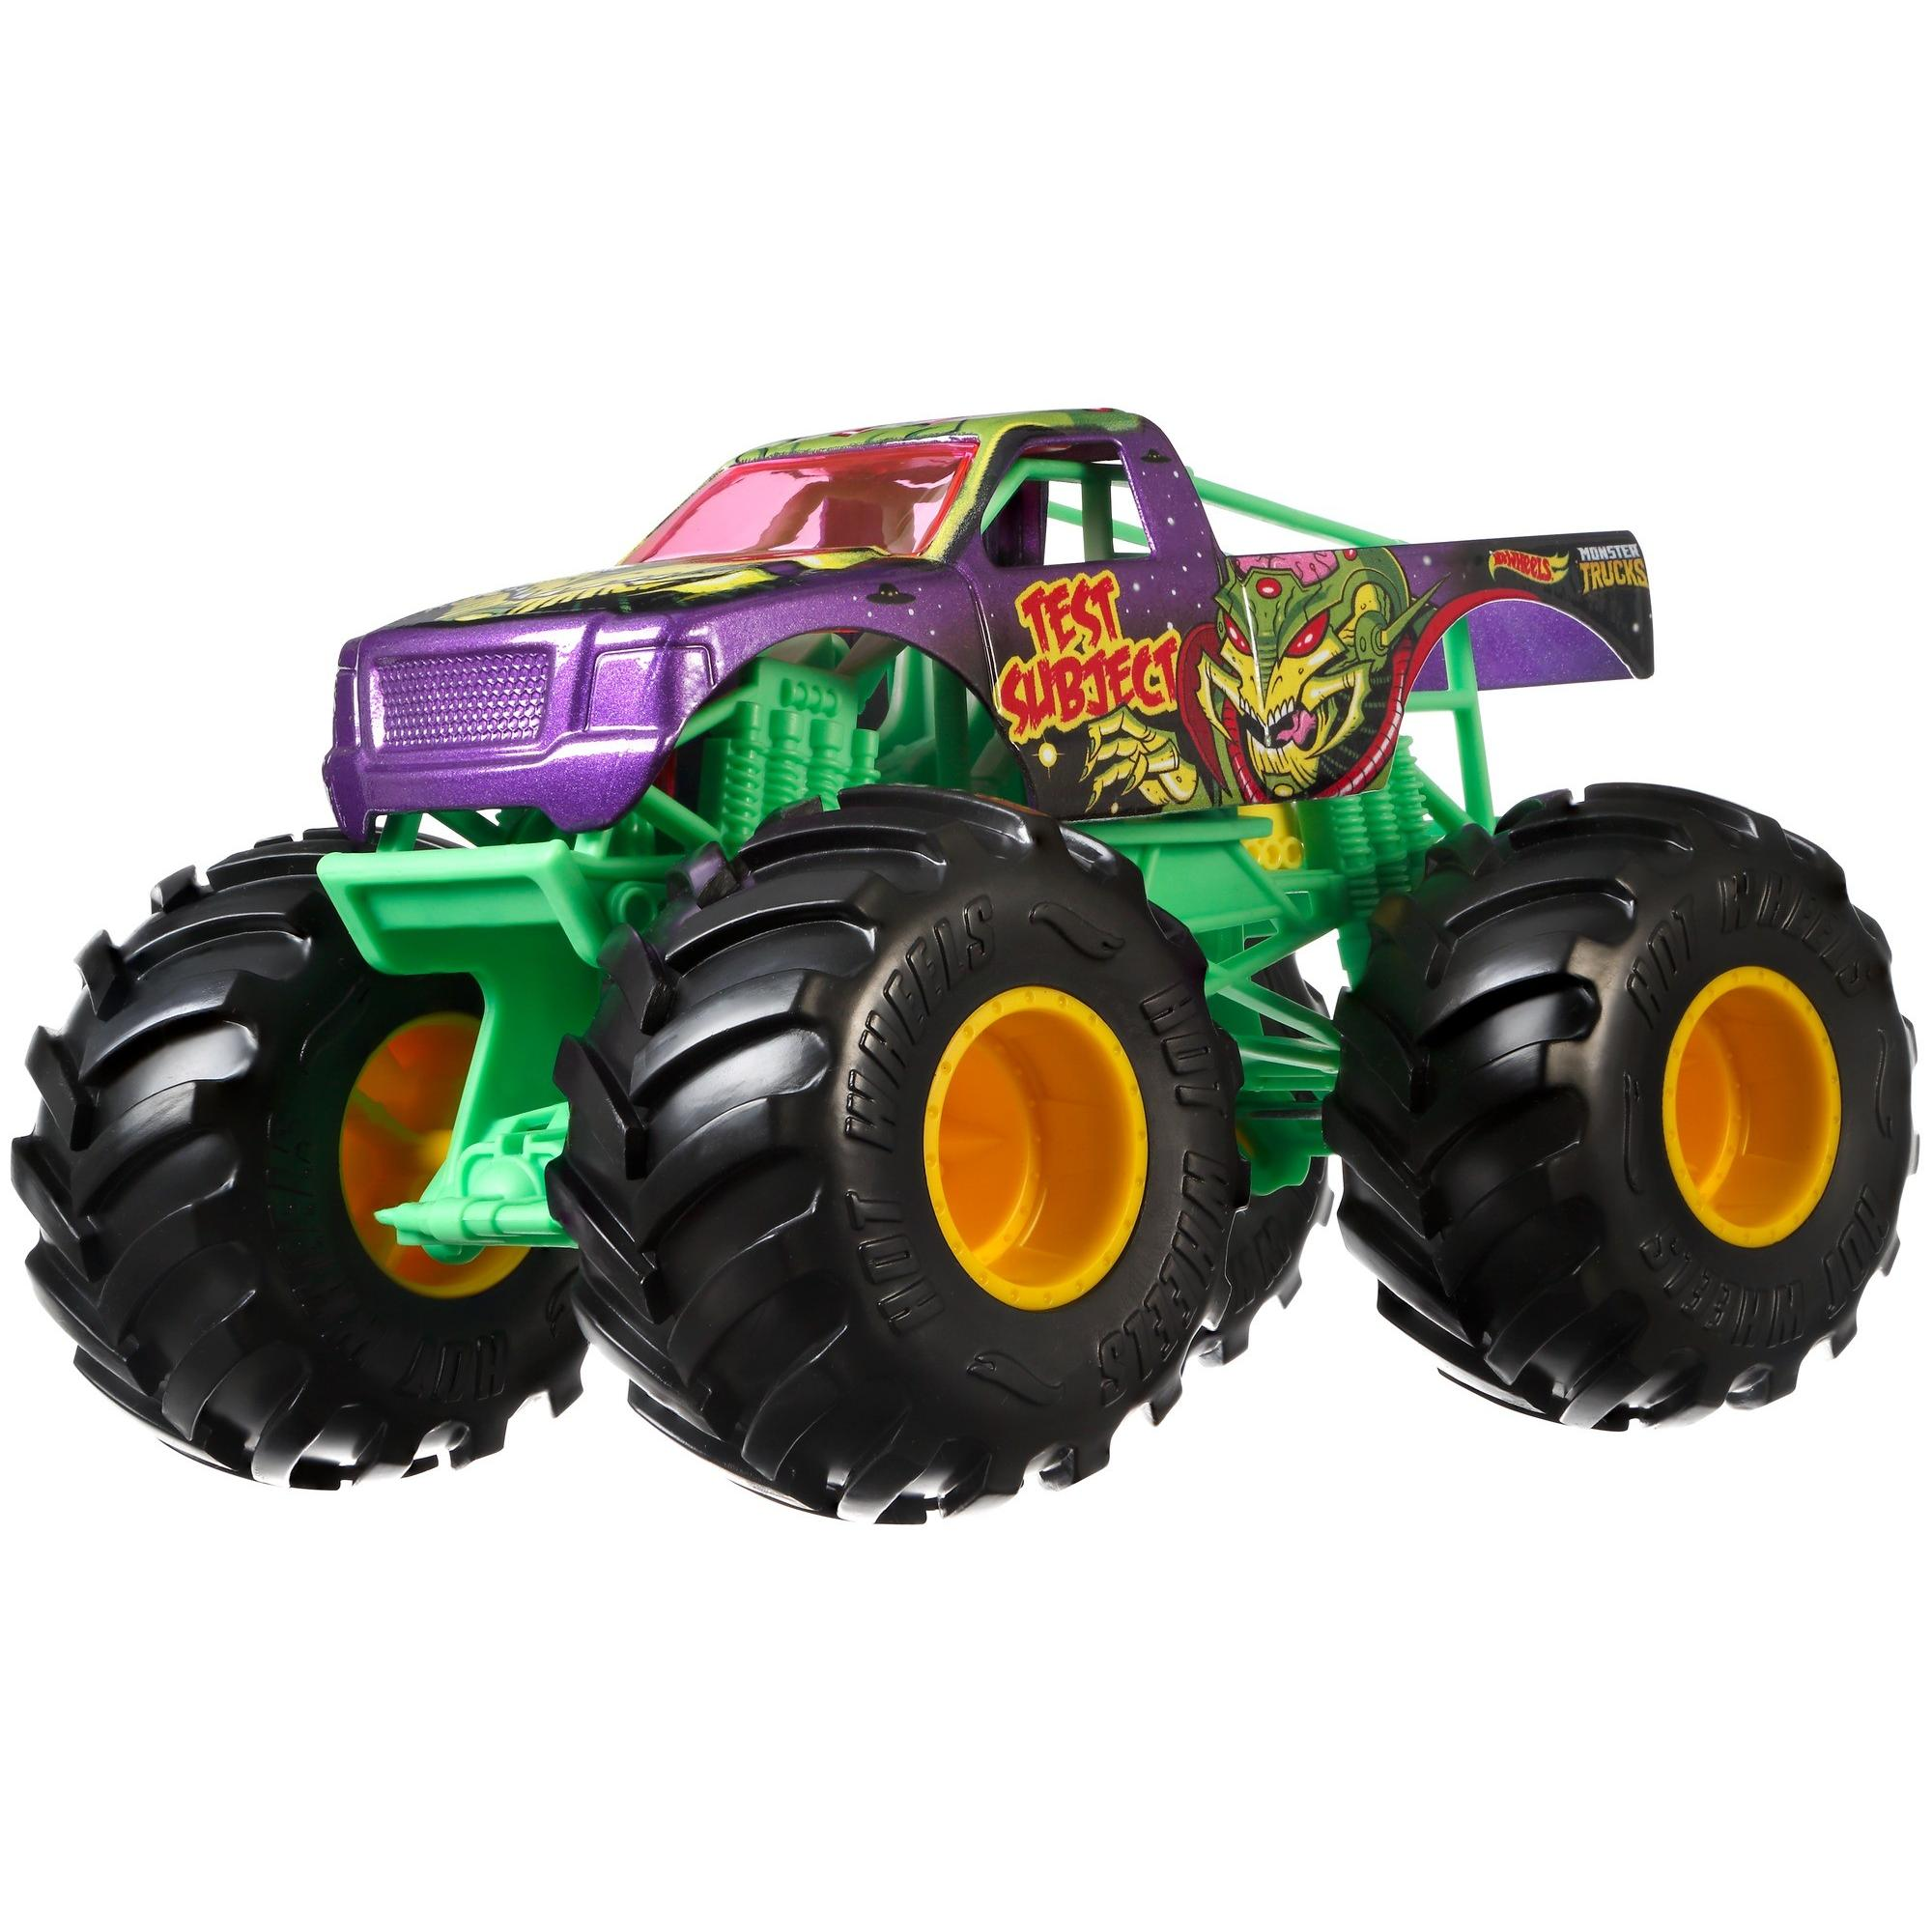 Hot Whells Monster Truck 1:24 - Test Subject - Mattel